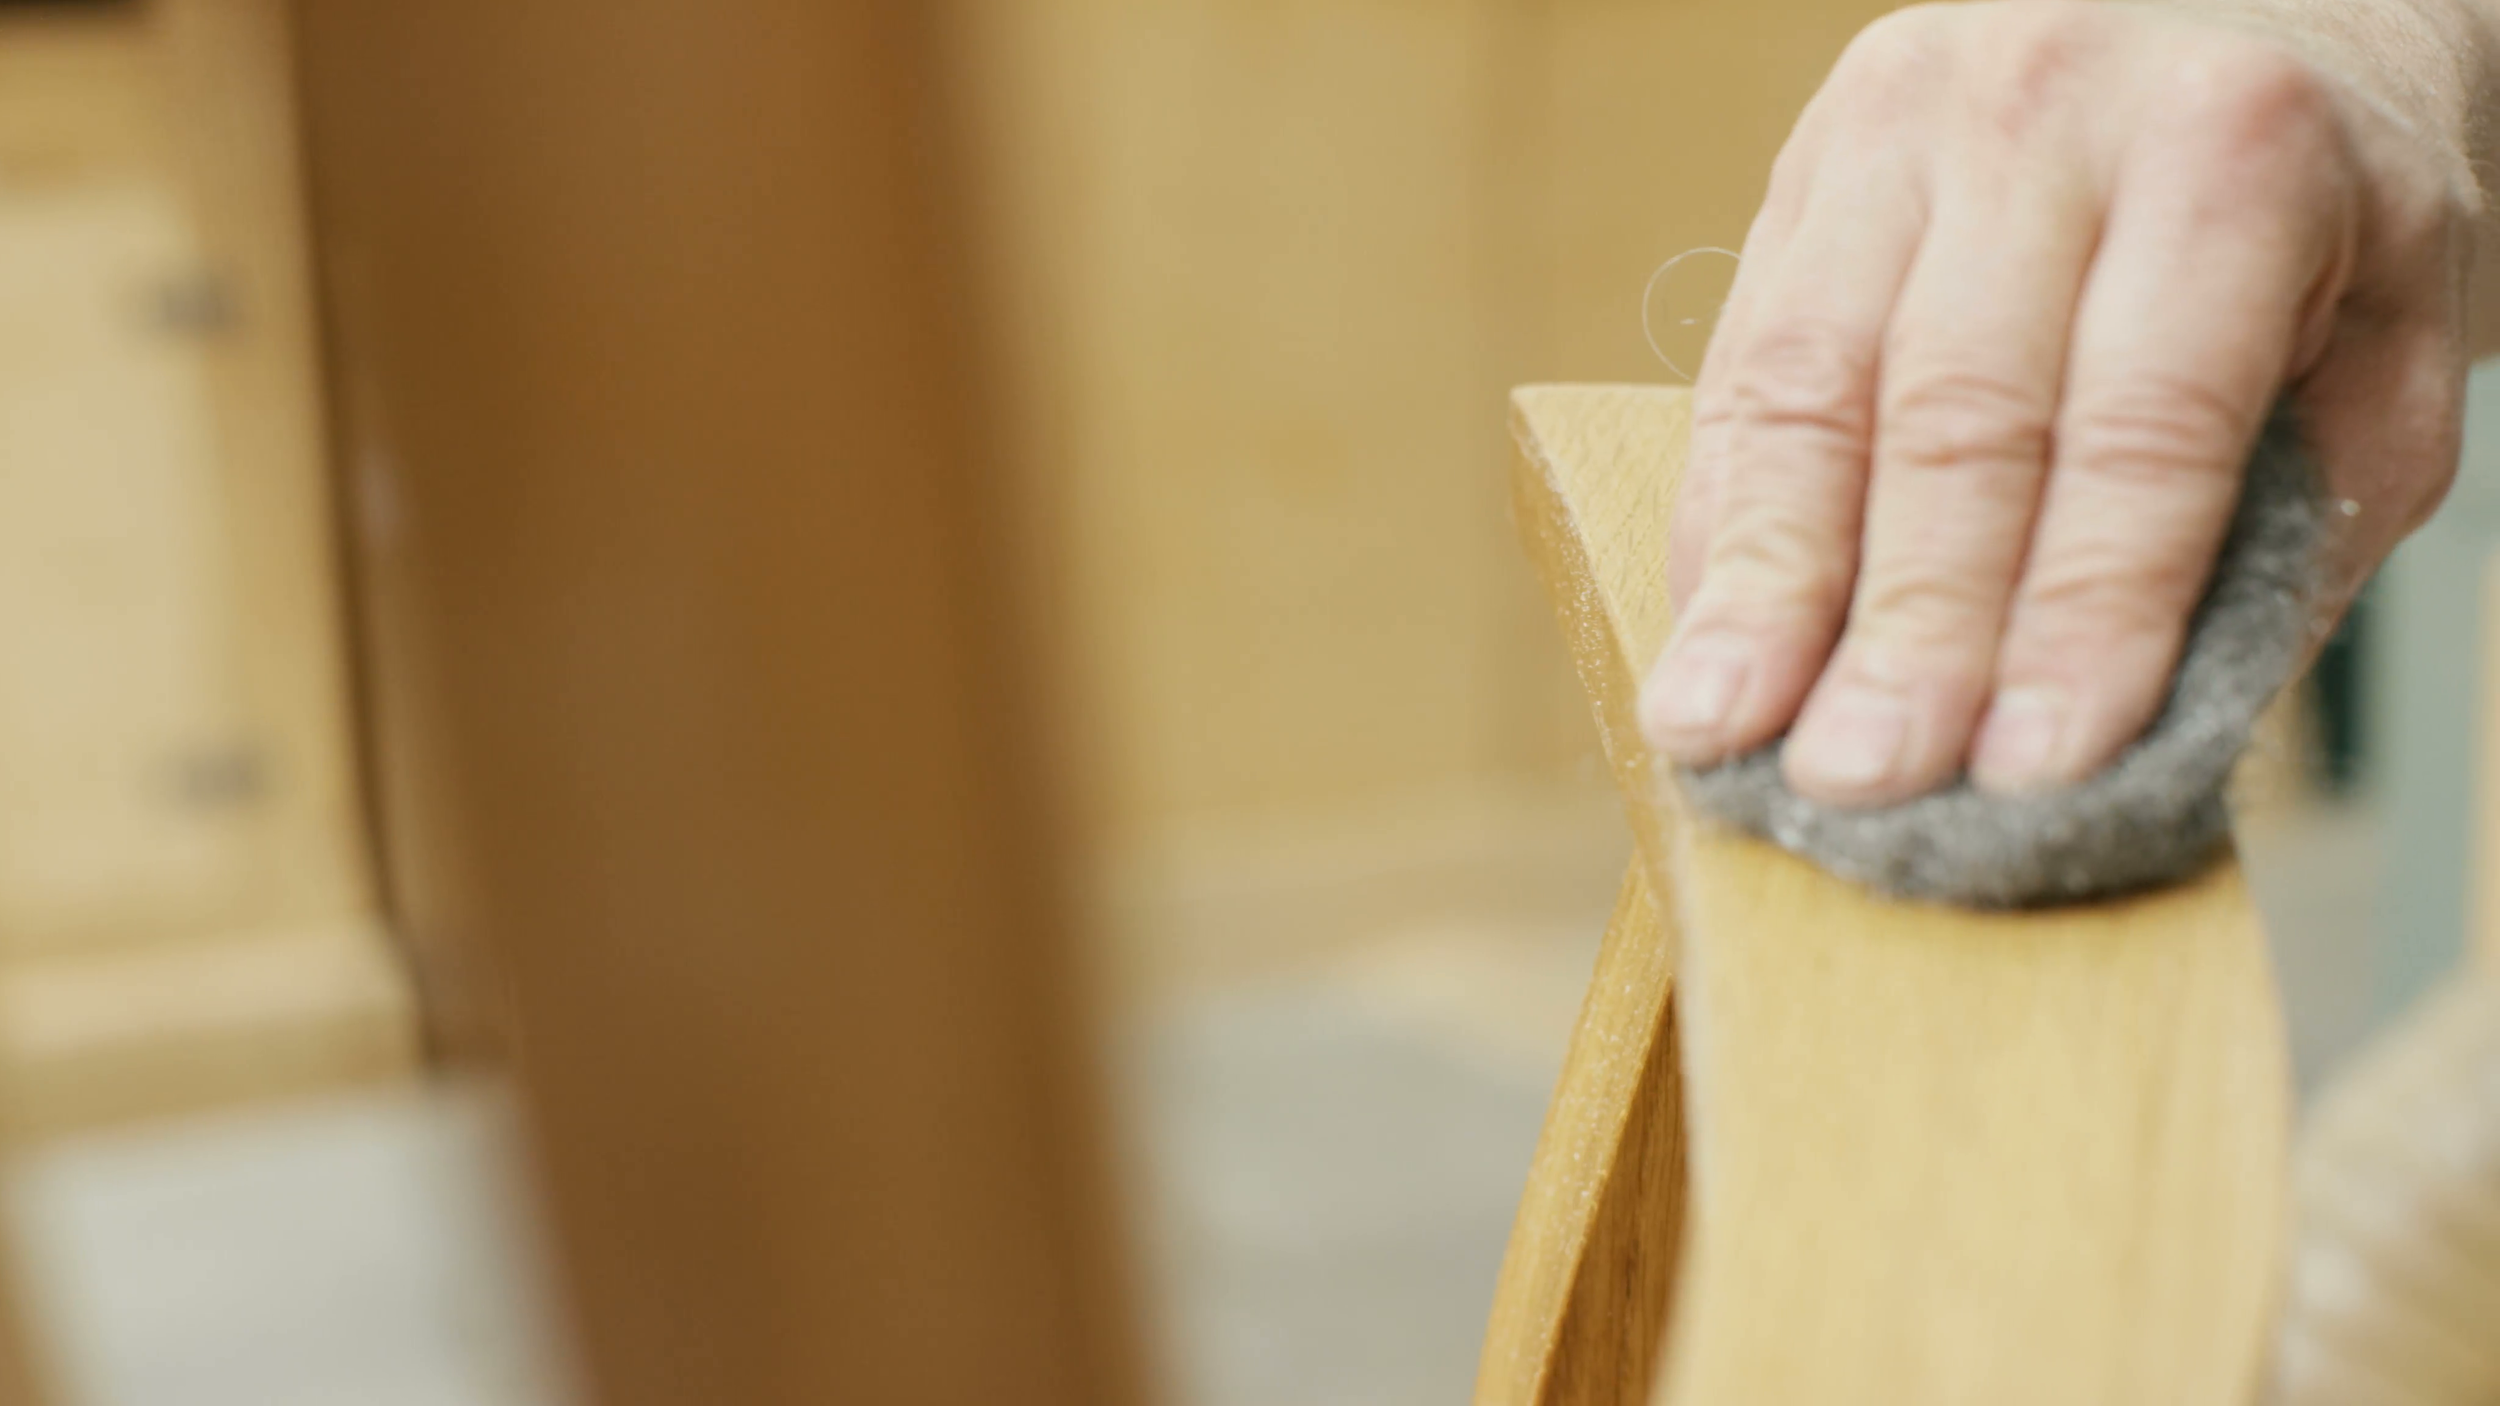 4k-close-up-on-the-hand-of-furniture-maker-in-his-workshop-putting-the-finishing-touches-to-a-rocking-chair-shot-on-red-epic_e7gfrfaskx__F0000.png